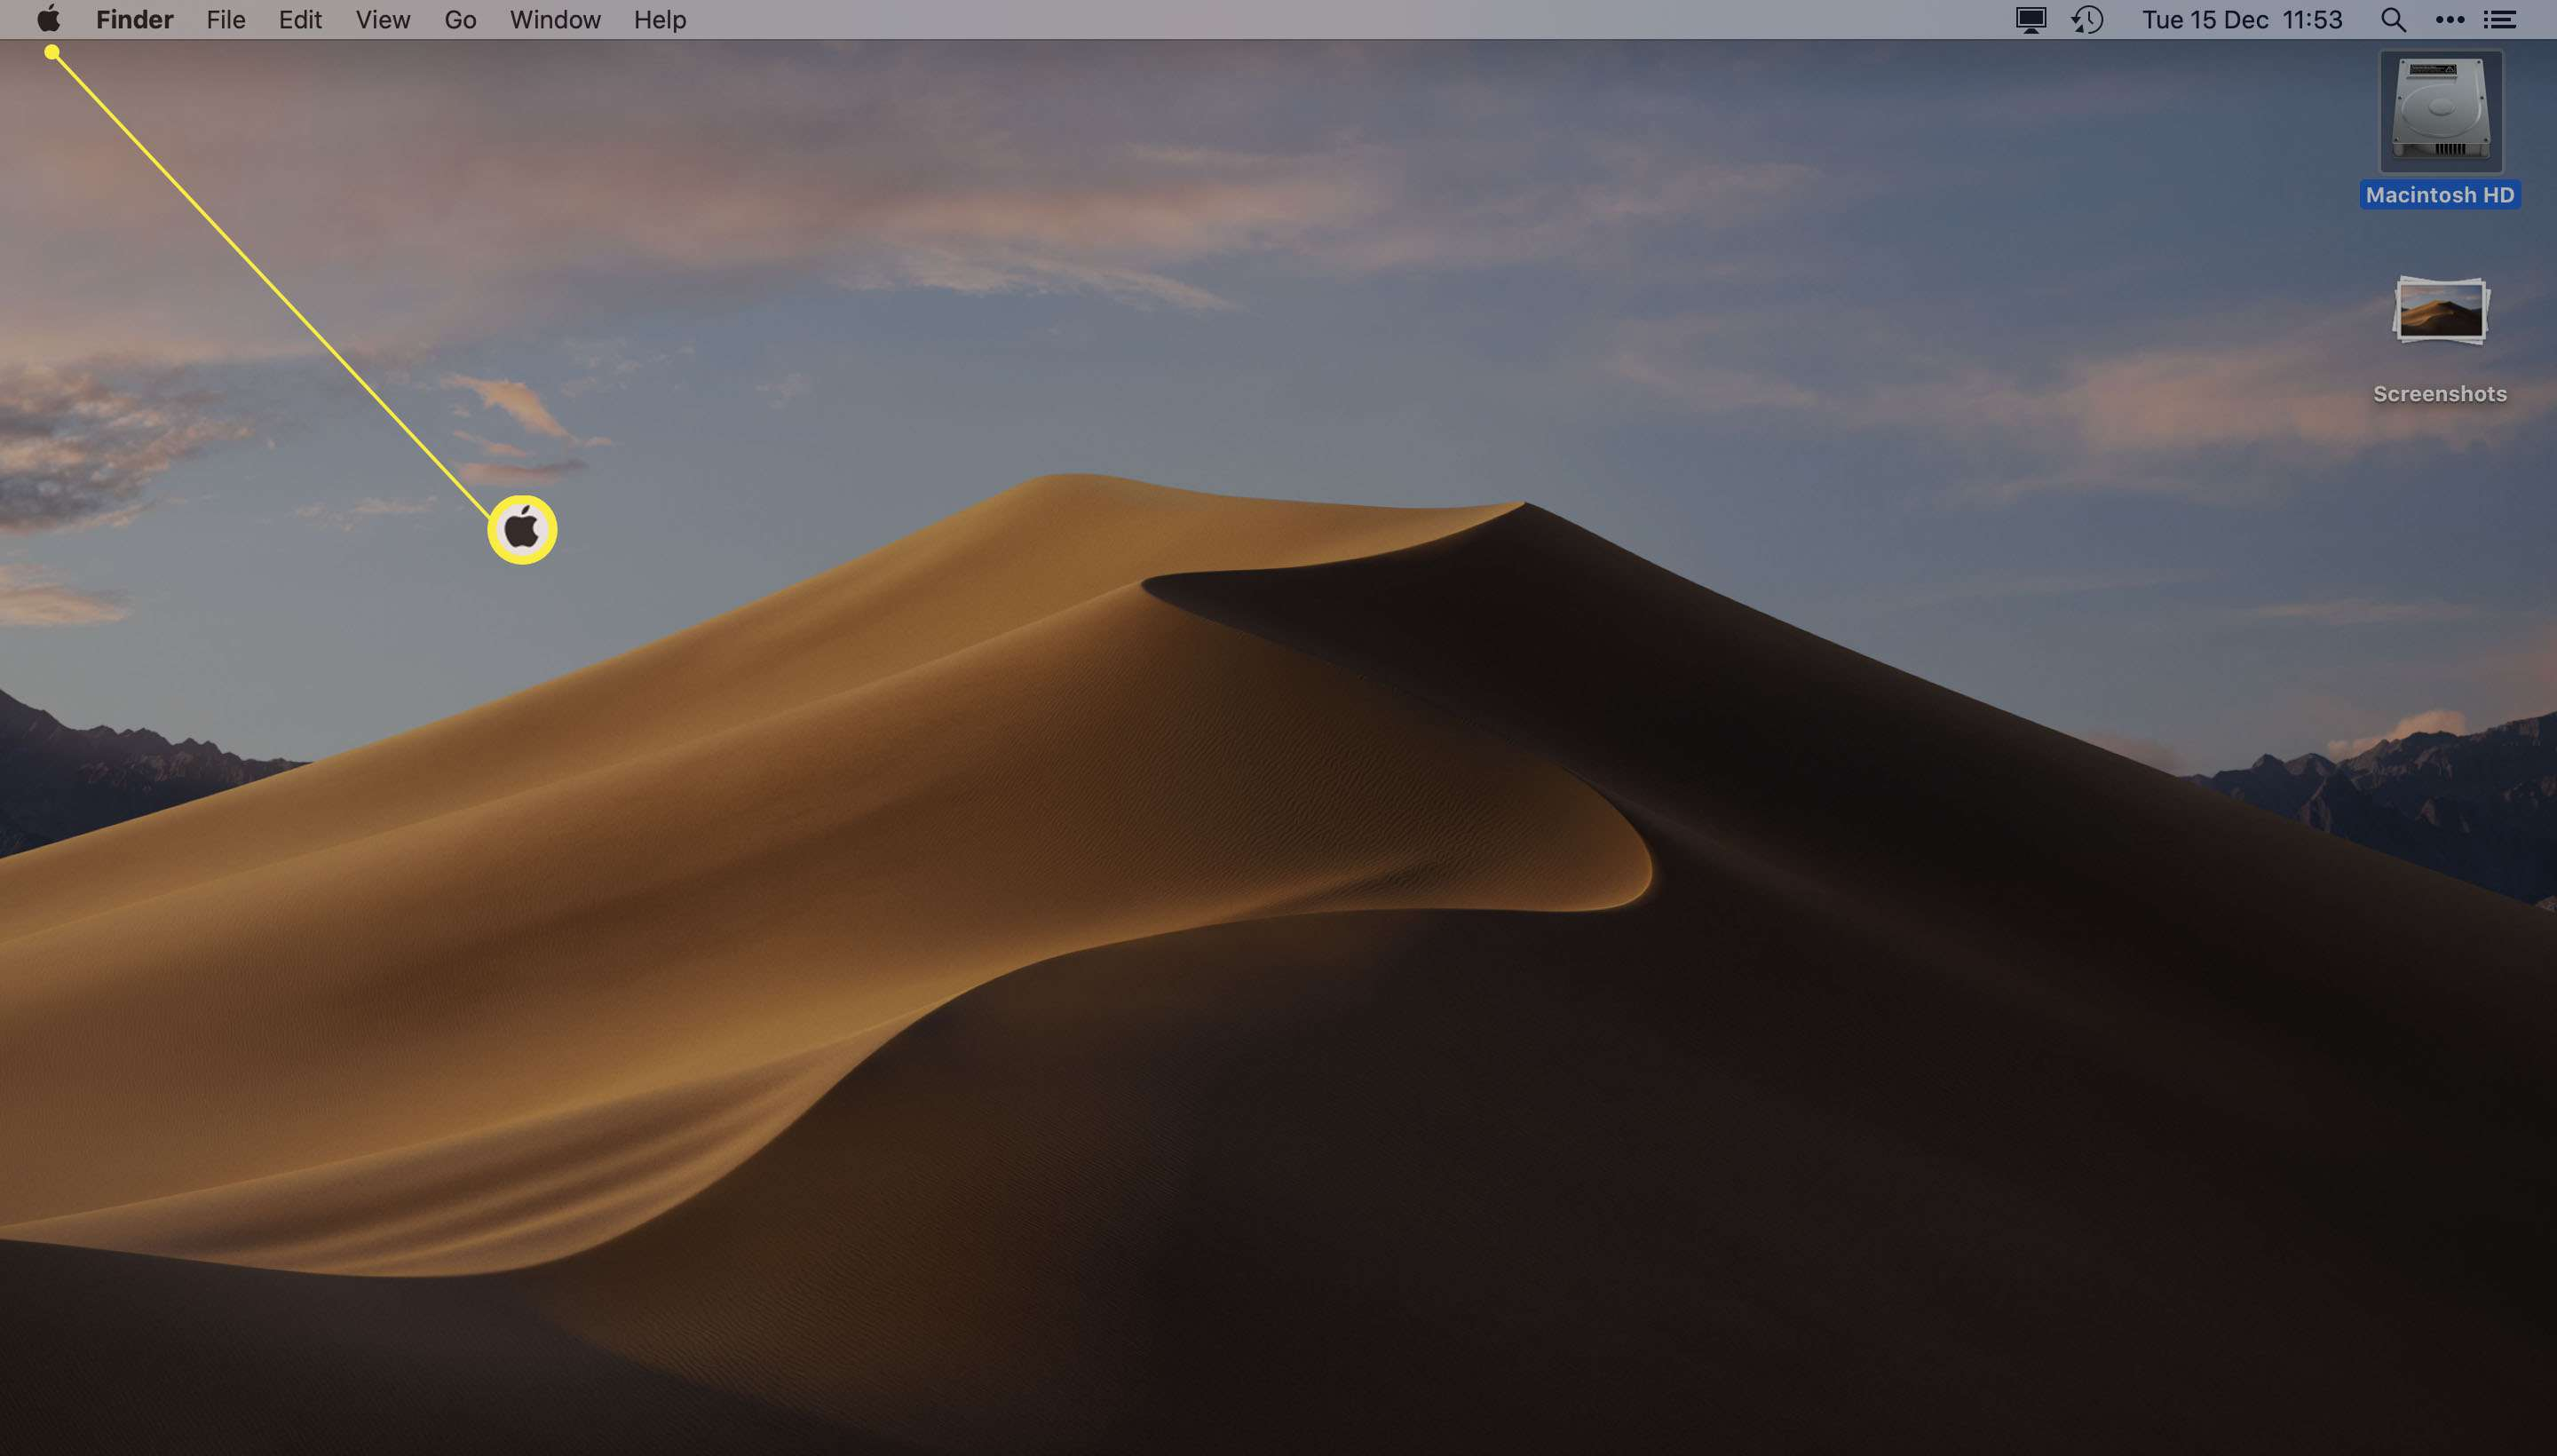 Apple desktop with Apple icon highlighted